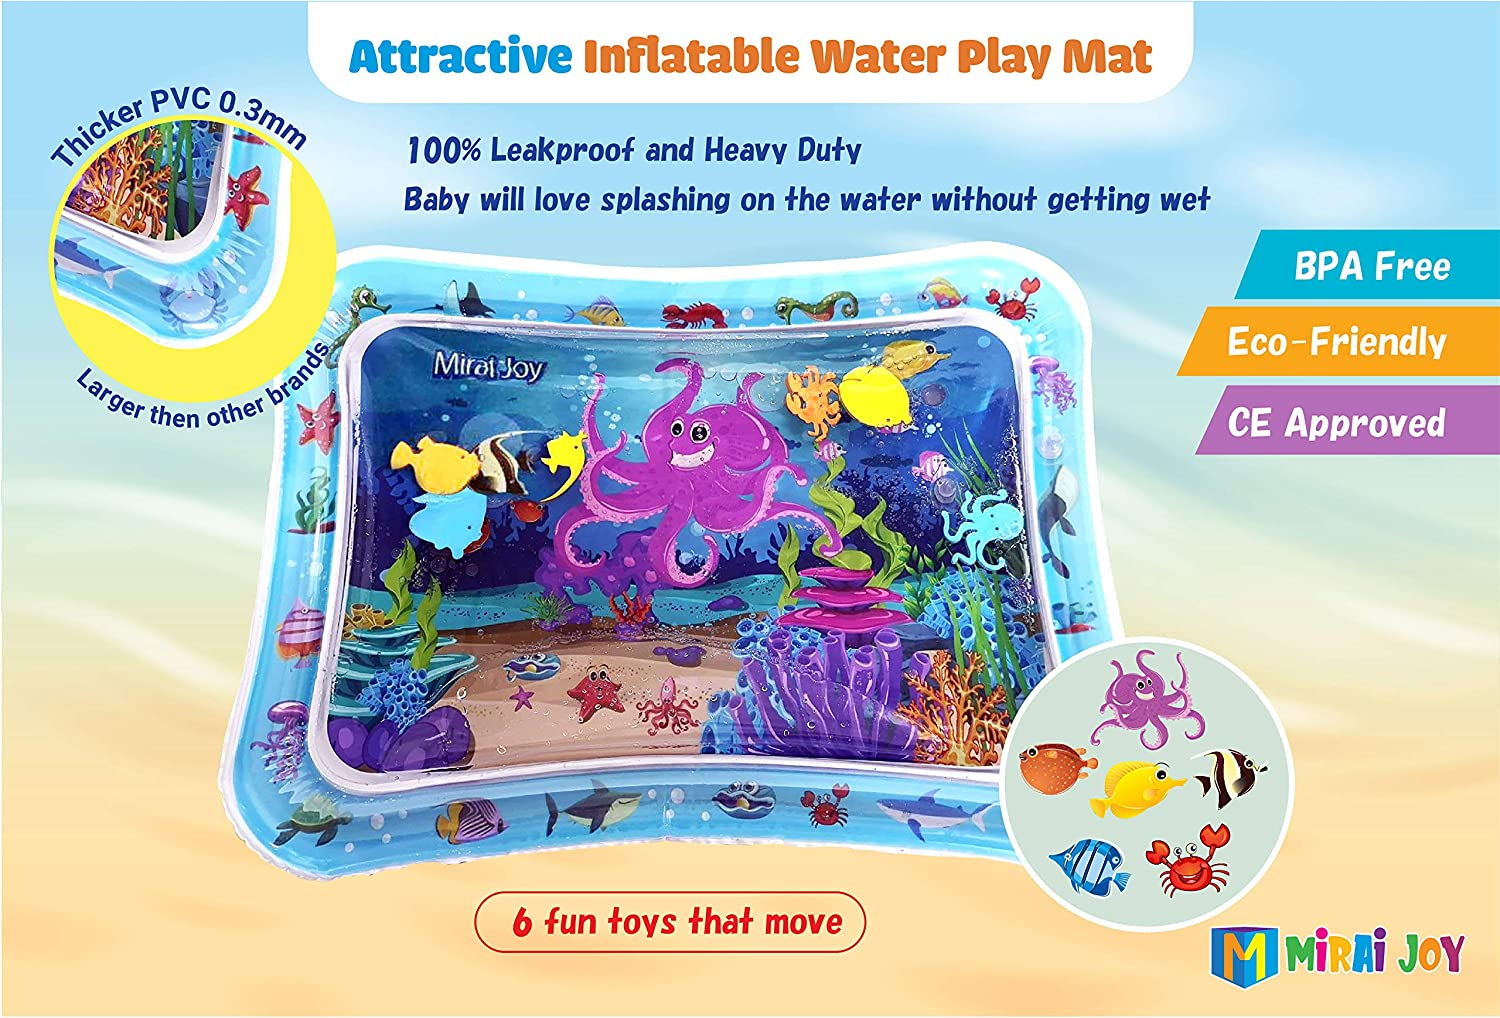 Mirai Joy Tummy Time Water Mat-CE Approved-Inflatable Water Play Mat Boys and Girls Perfect Sensory Toys for 3 6 9 12 Months Children and Infant